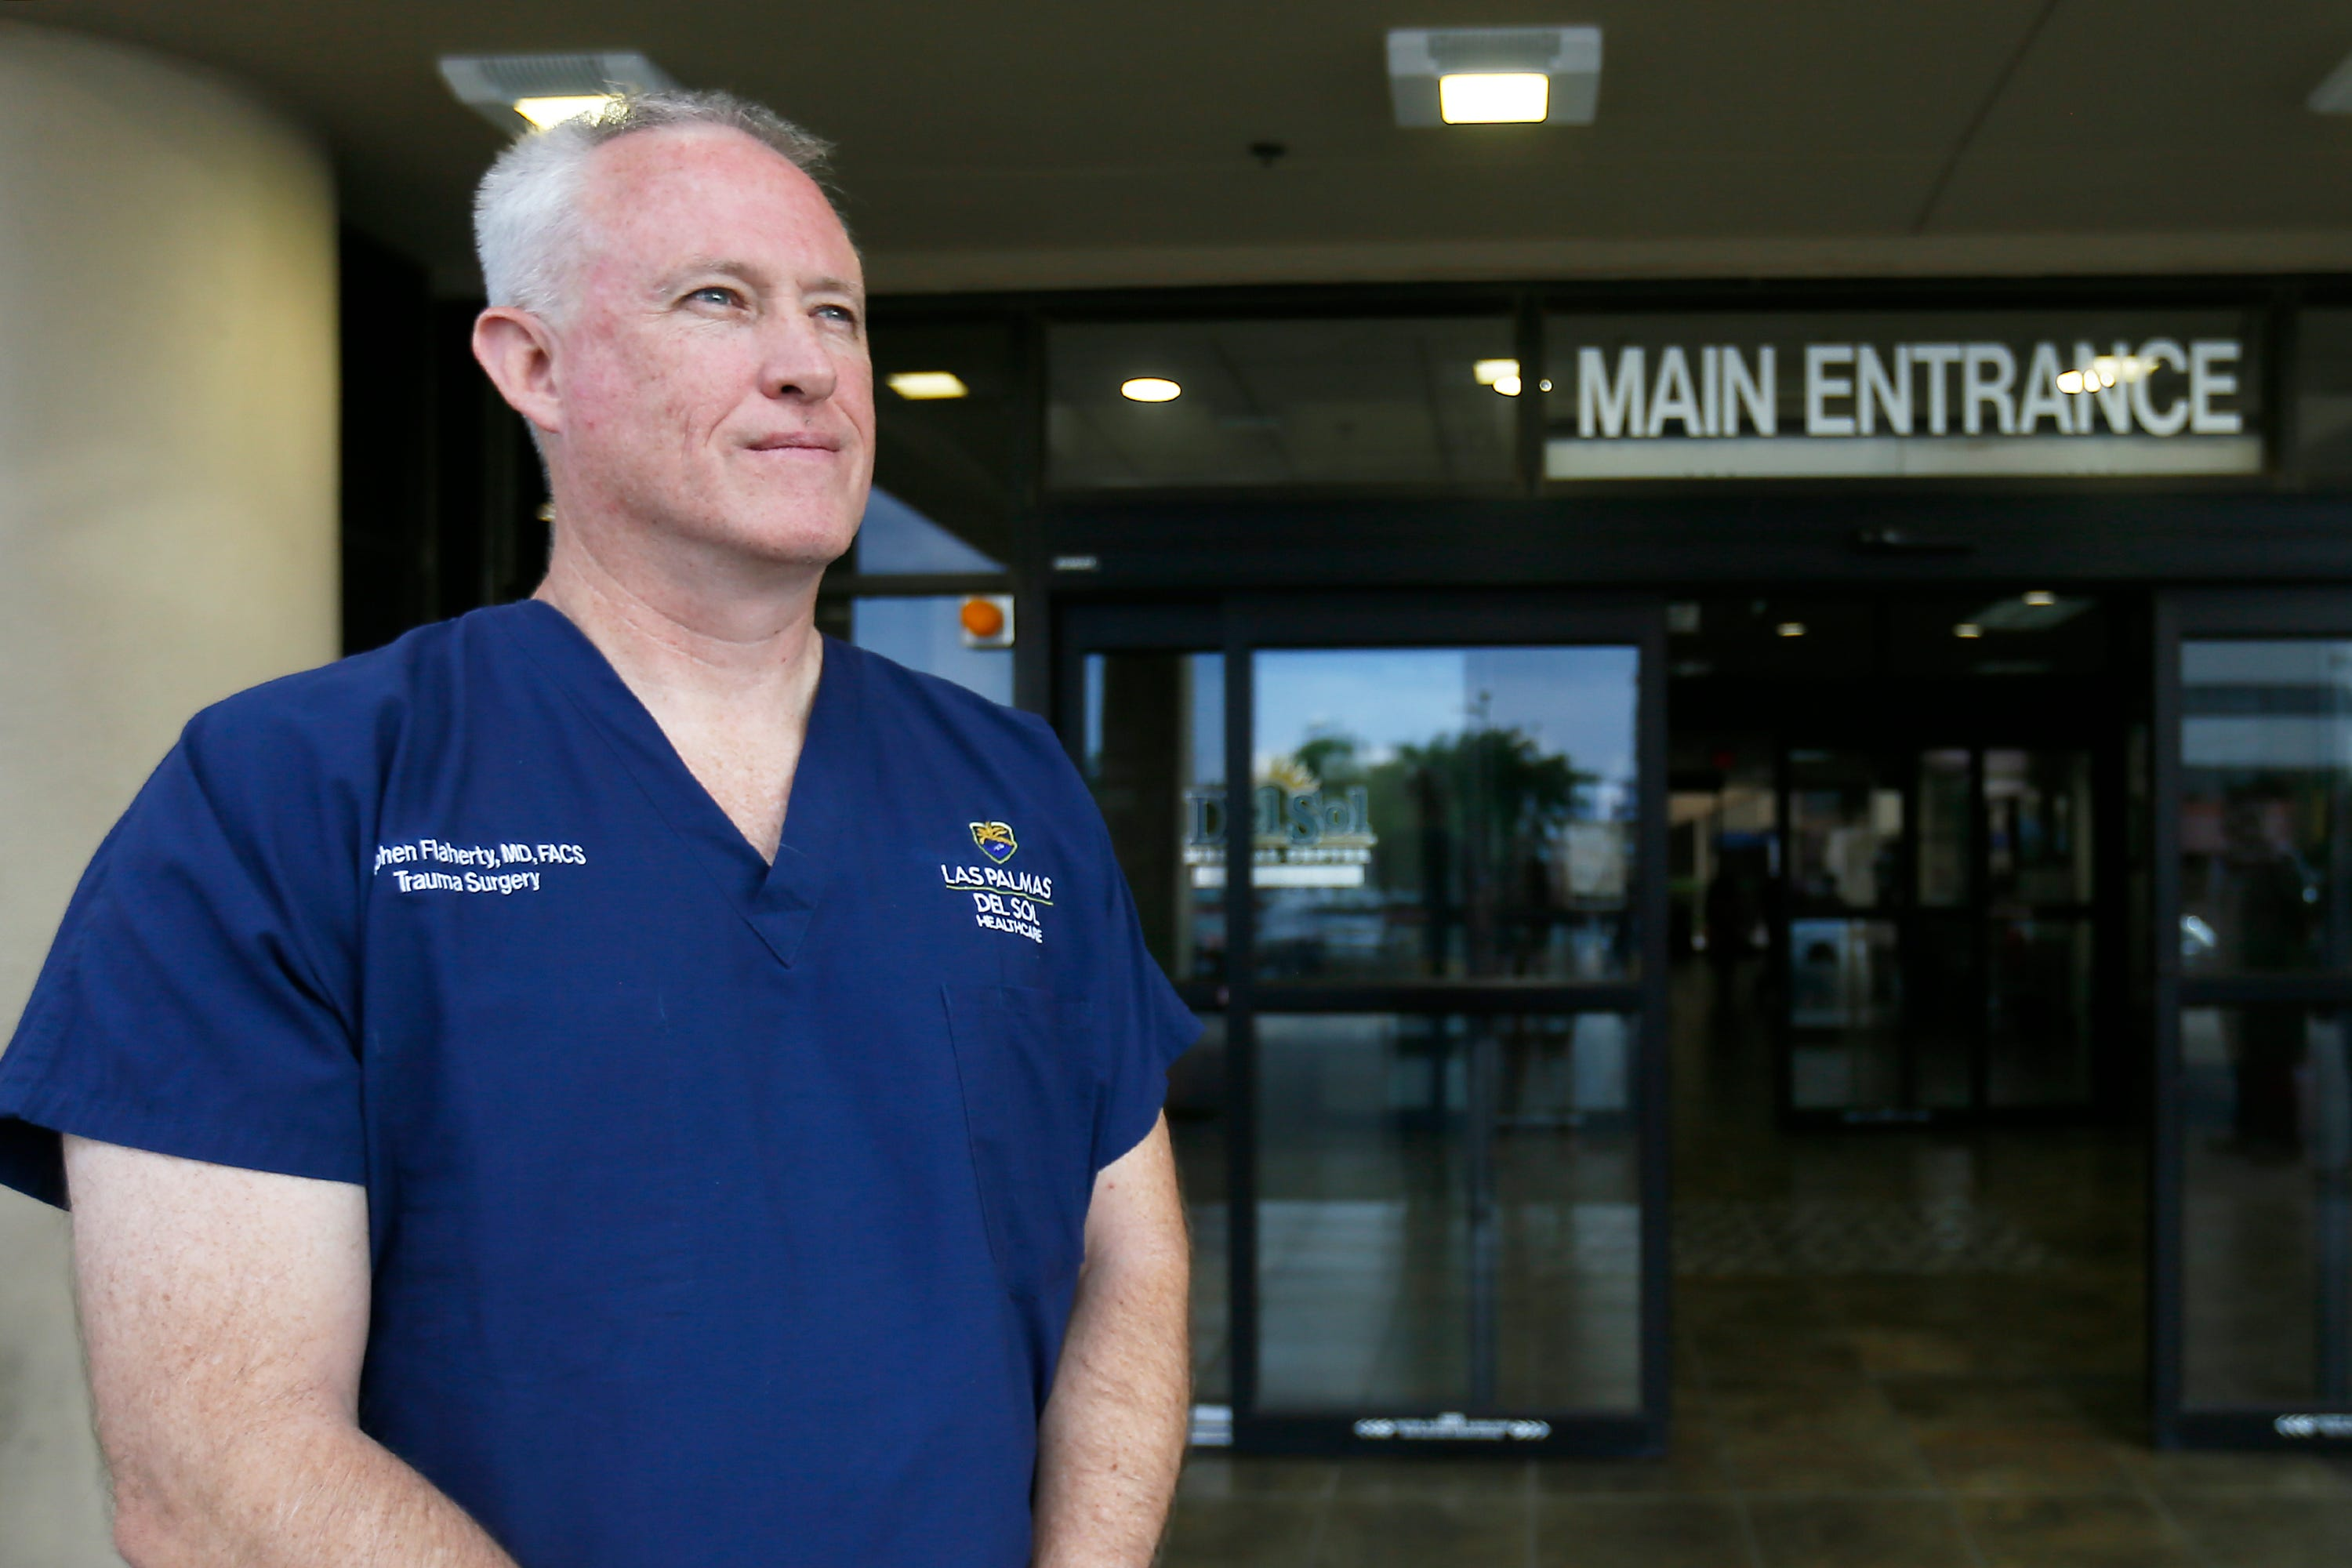 Dr. Stephen Flaherty, medical director of trauma at the Del Sol Medical Center in El Paso, talks about the day of the Walmart shooting. Flaherty was among doctors who assisted shooting victims.